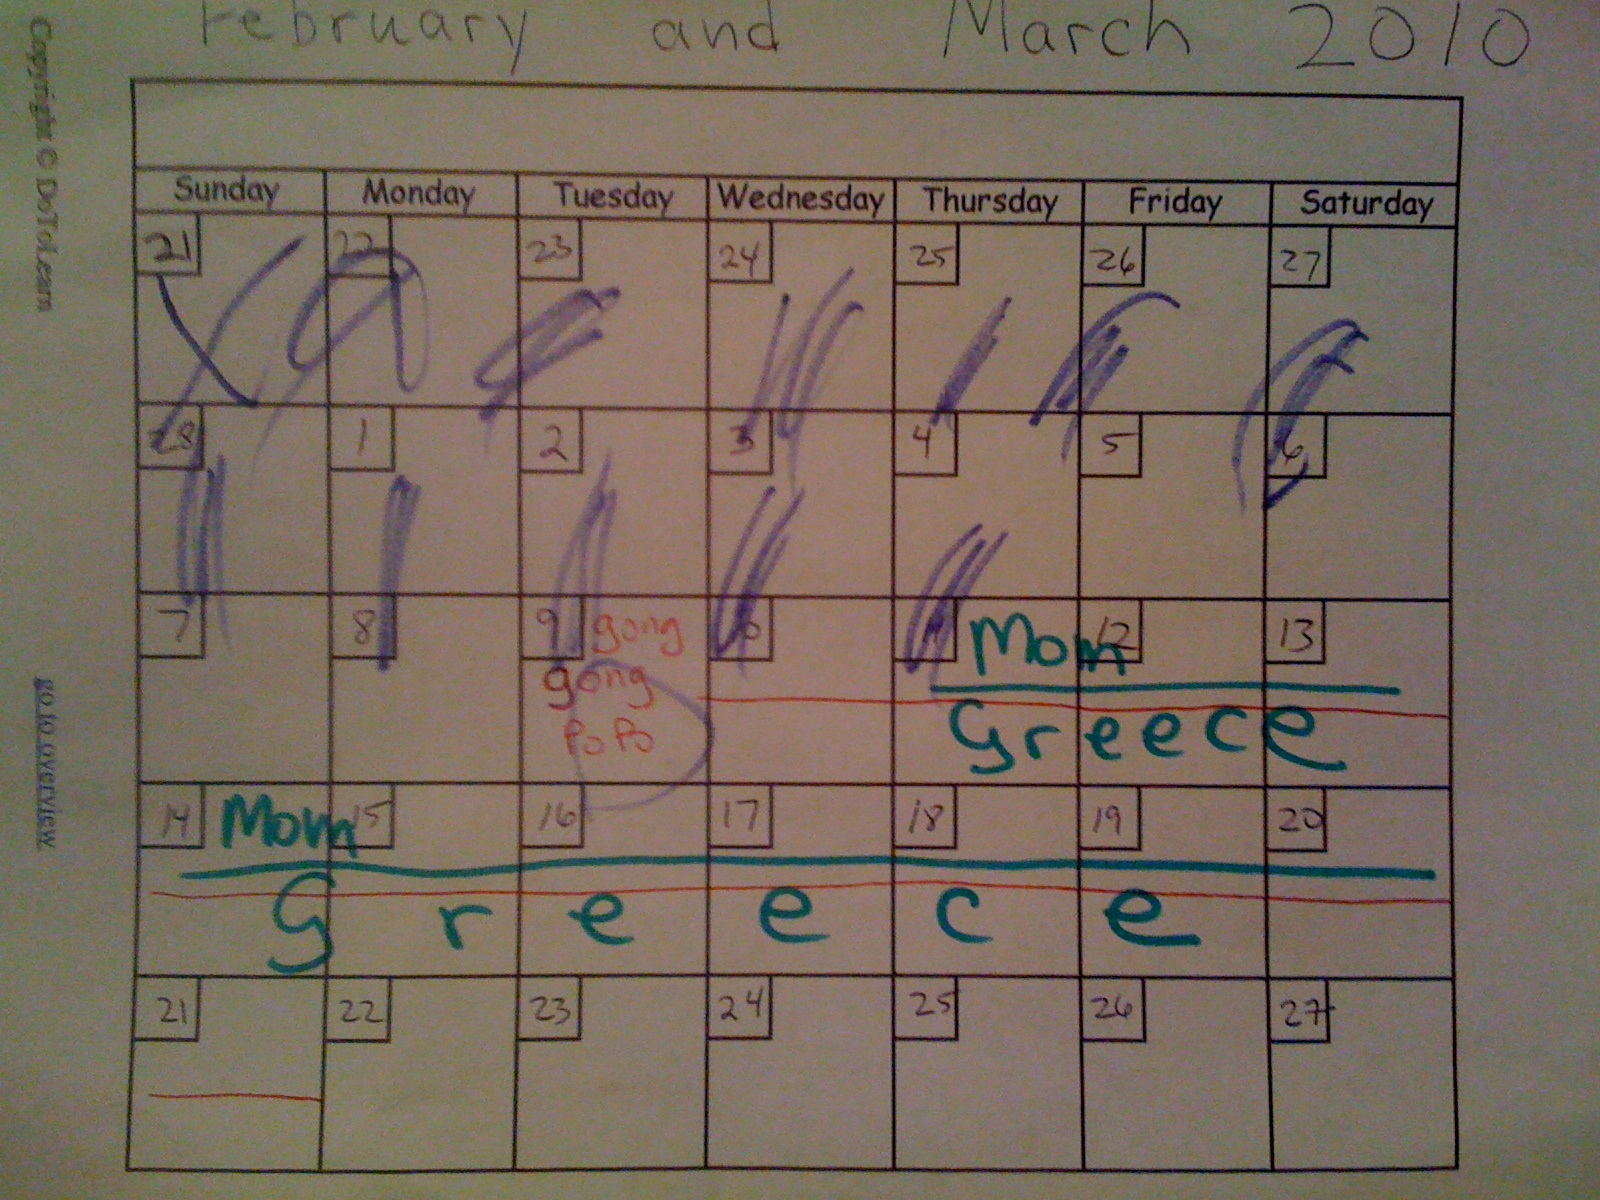 February and March MMX calendar for Charlie